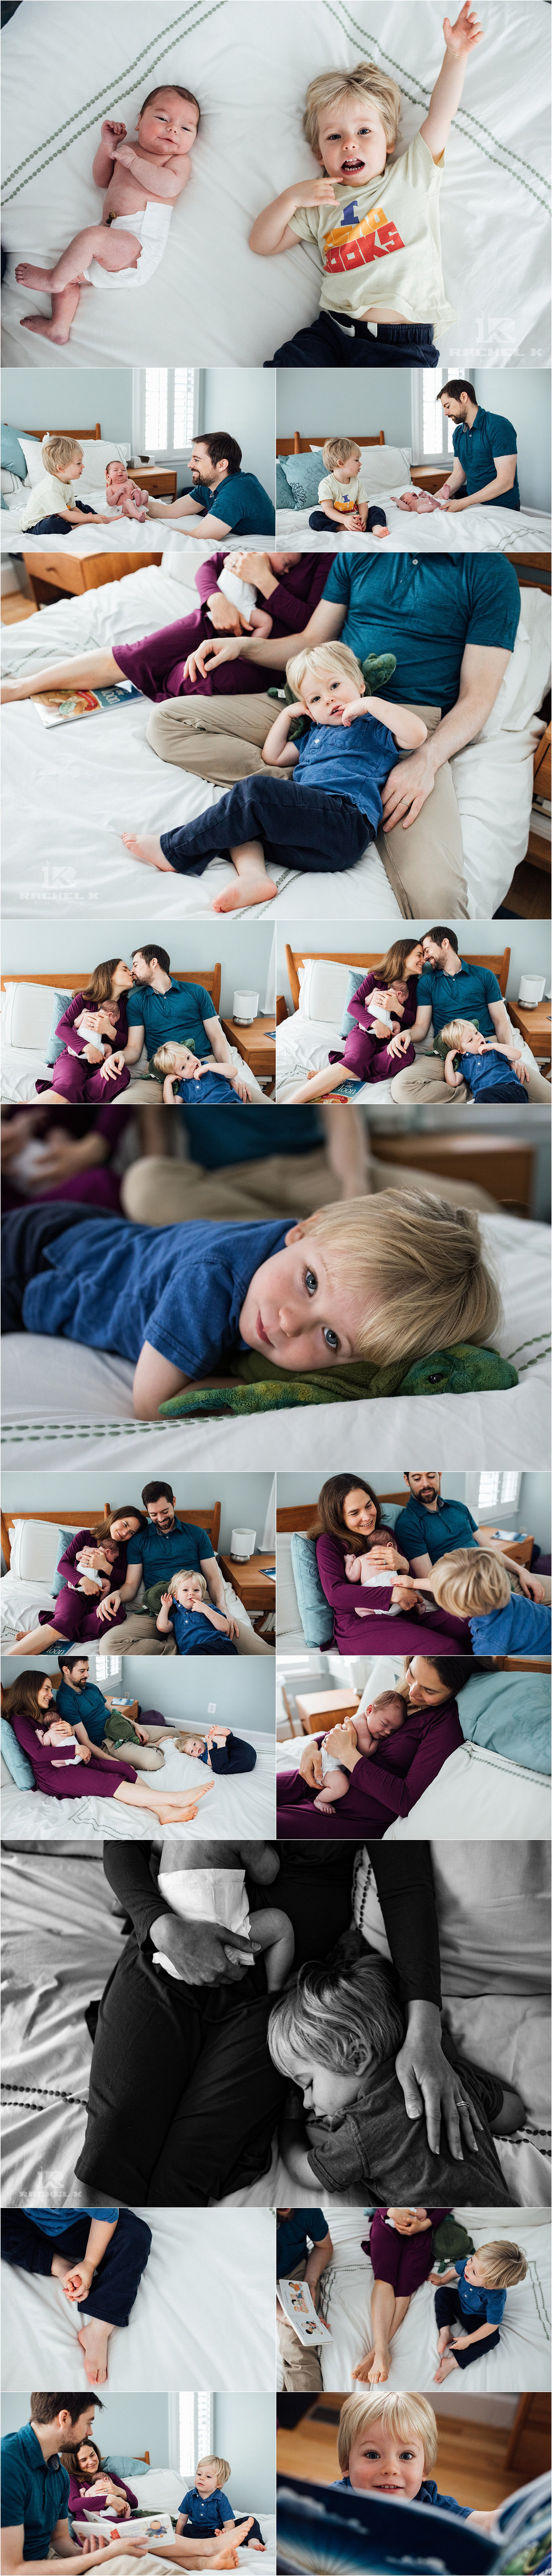 Fairfax Virginia lifestyle newborn session with big brother by Rachel K Photo